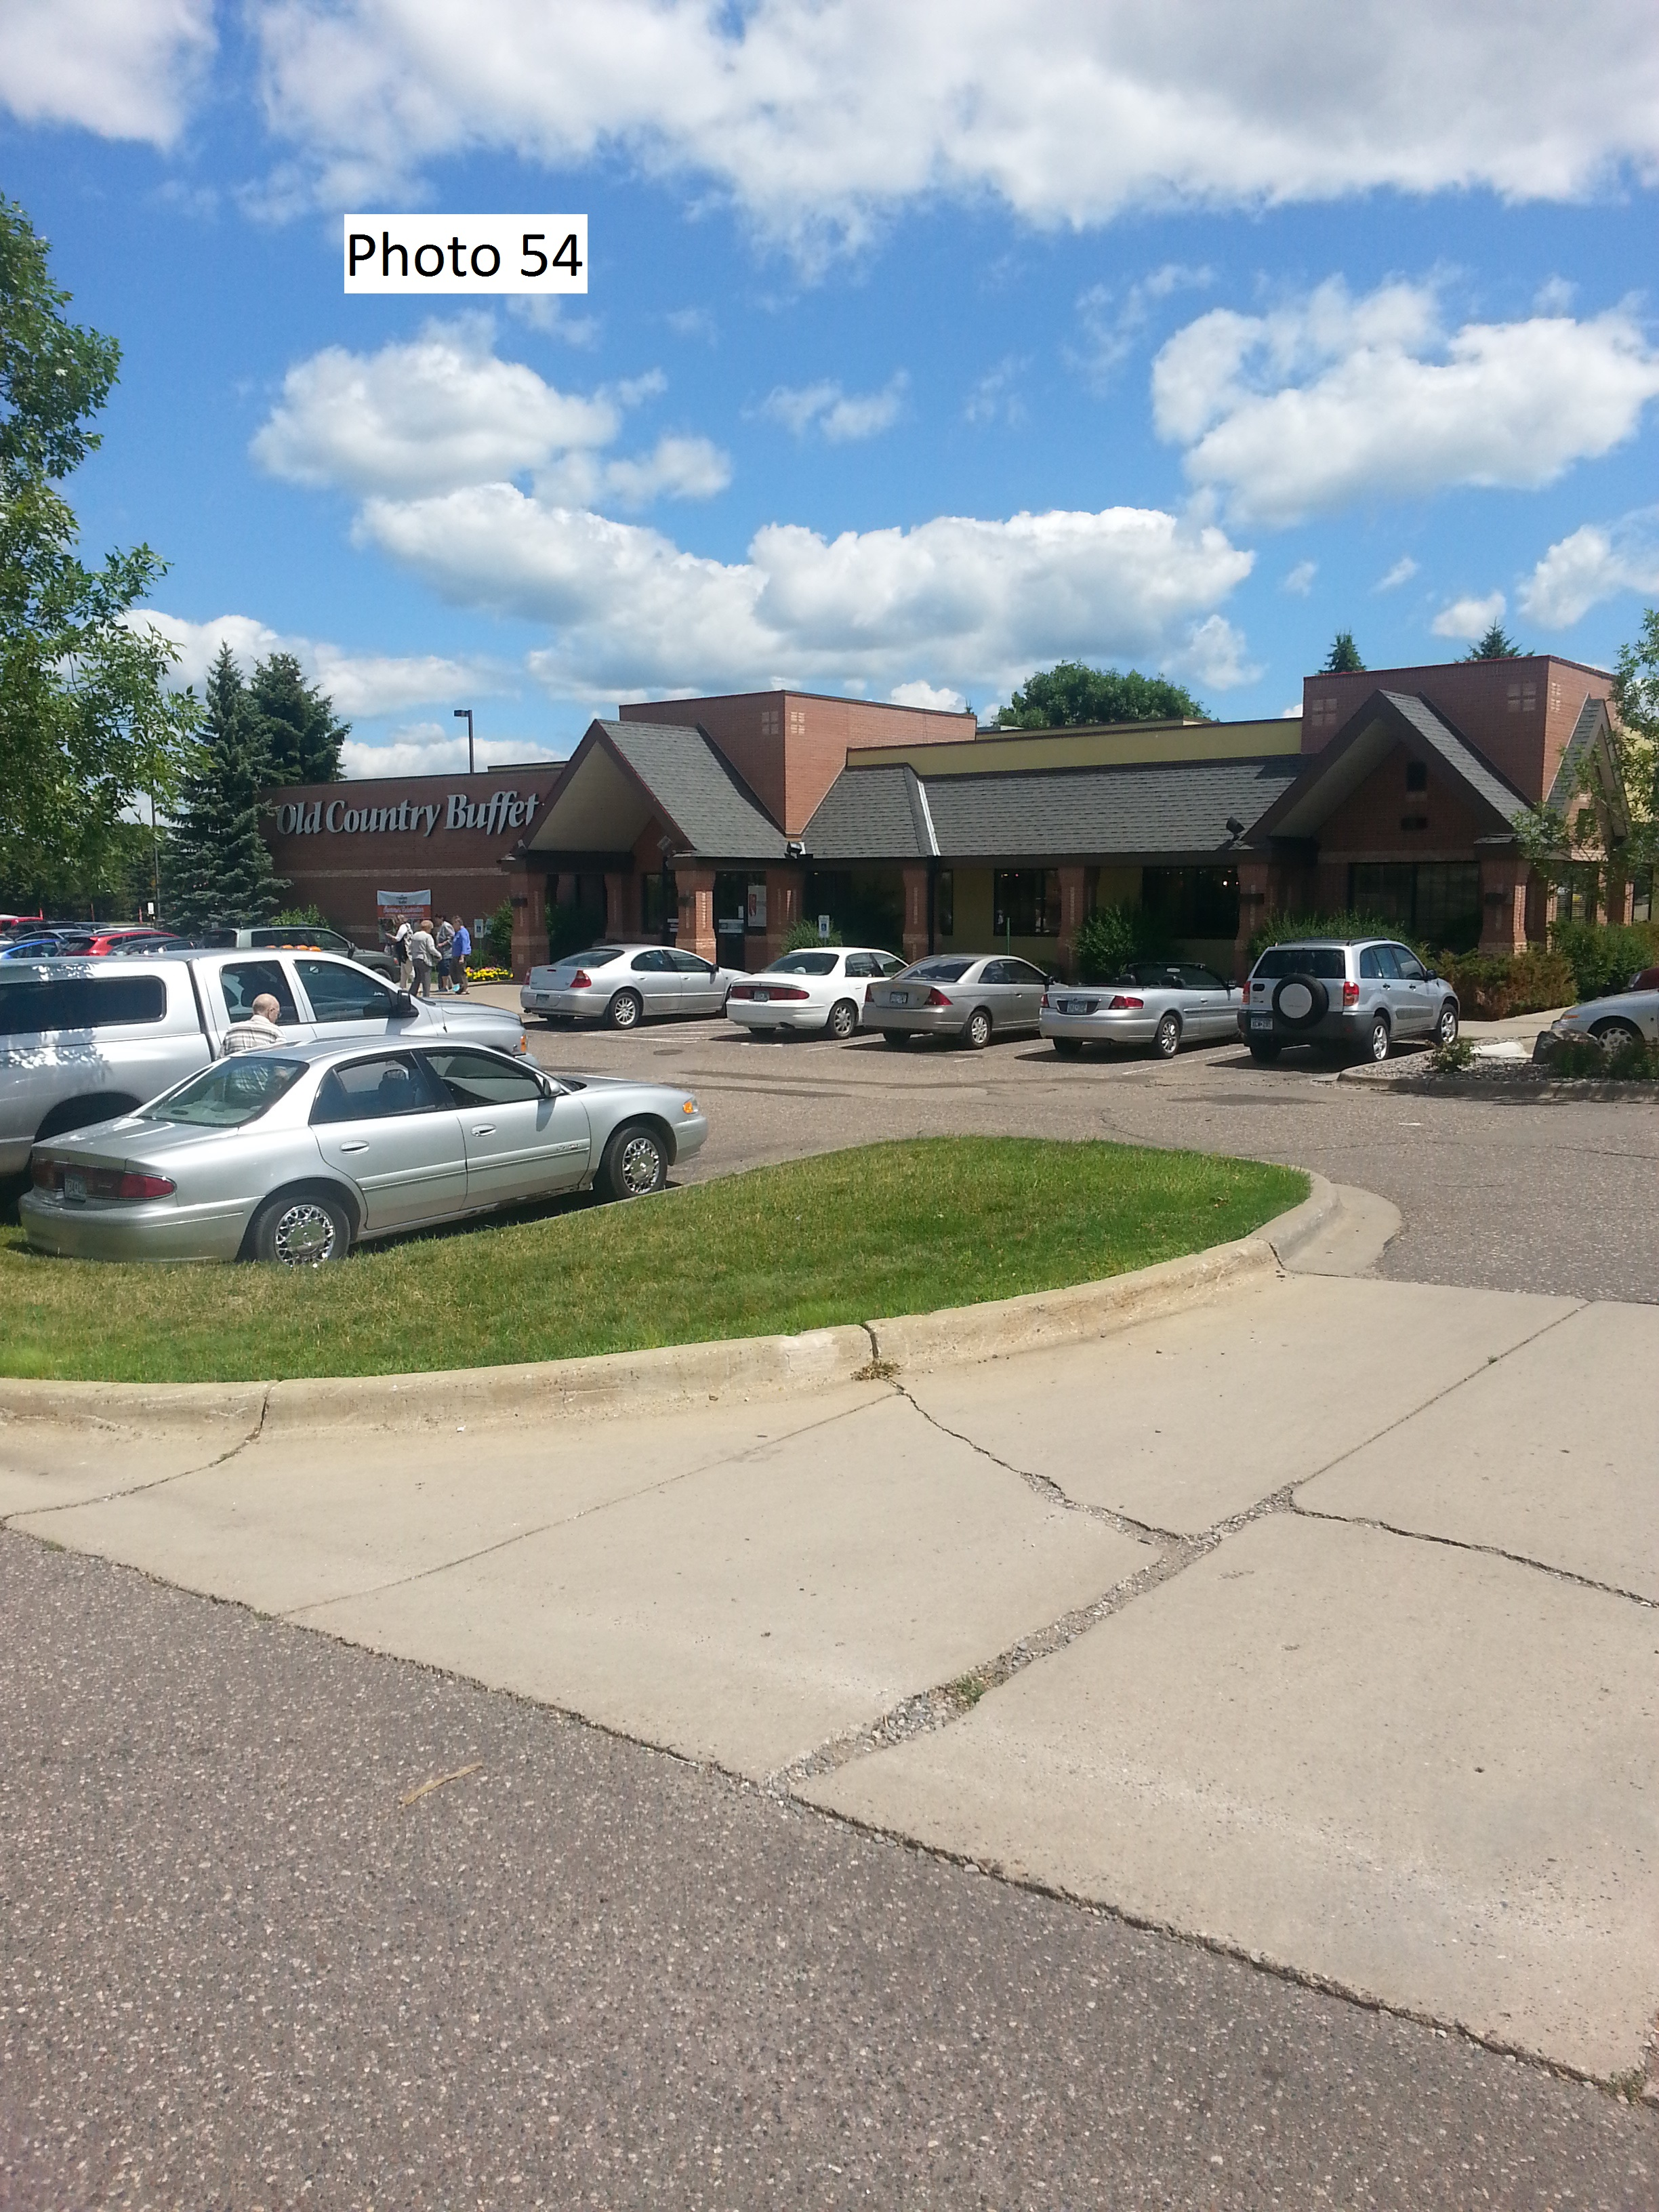 Old Country Buffet - Nicollet Ave, Burnsville, Minnesota - Rated based on Reviews